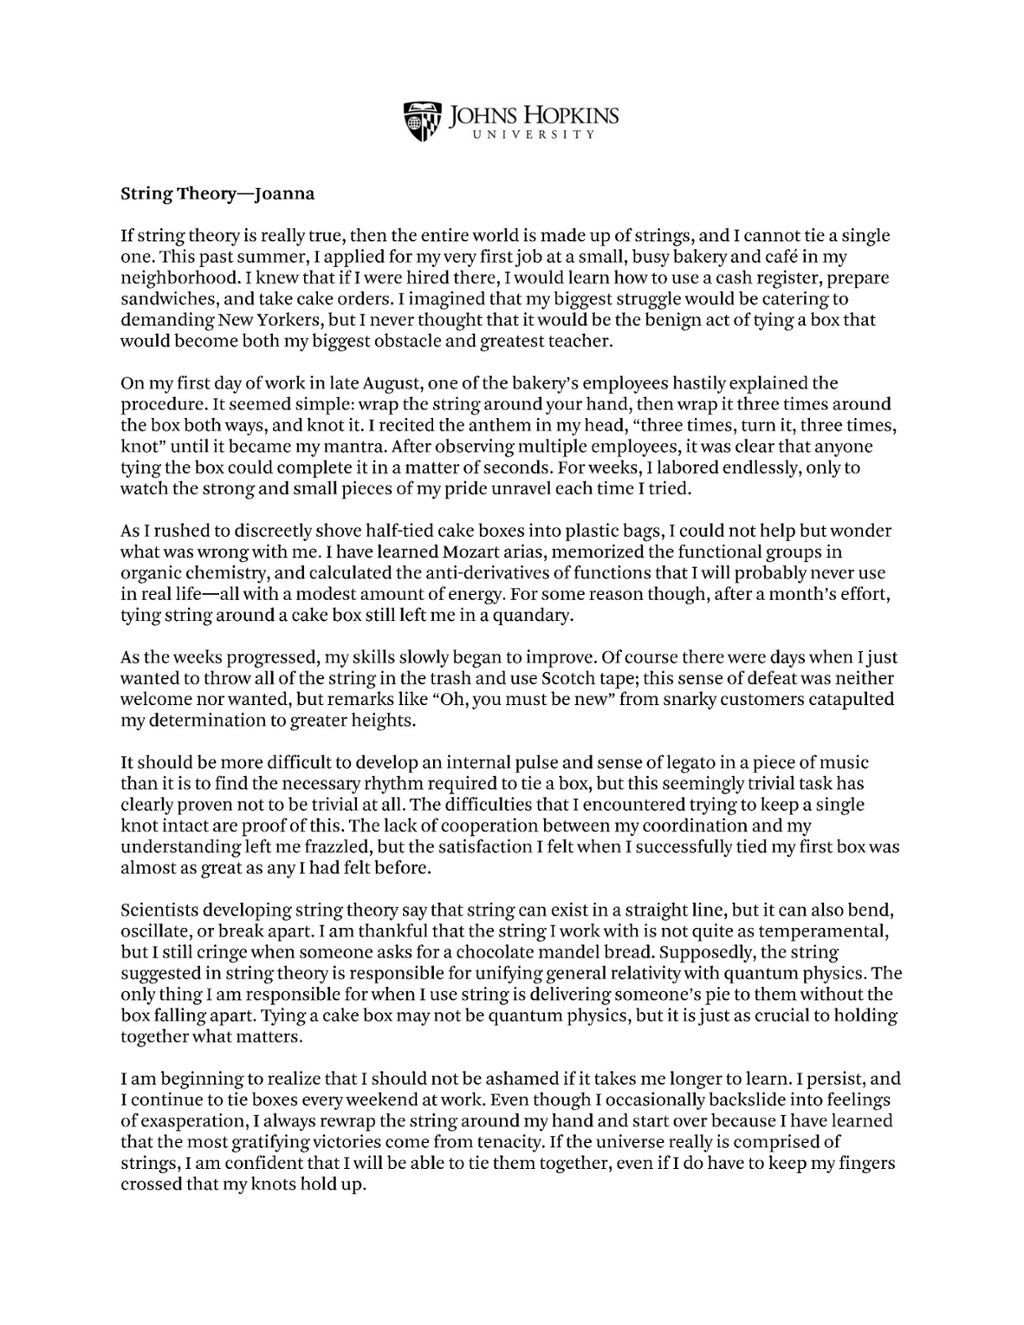 001 Essay Example How Long Should College Fearsome A Be Many Words Application For Apply Texas Large